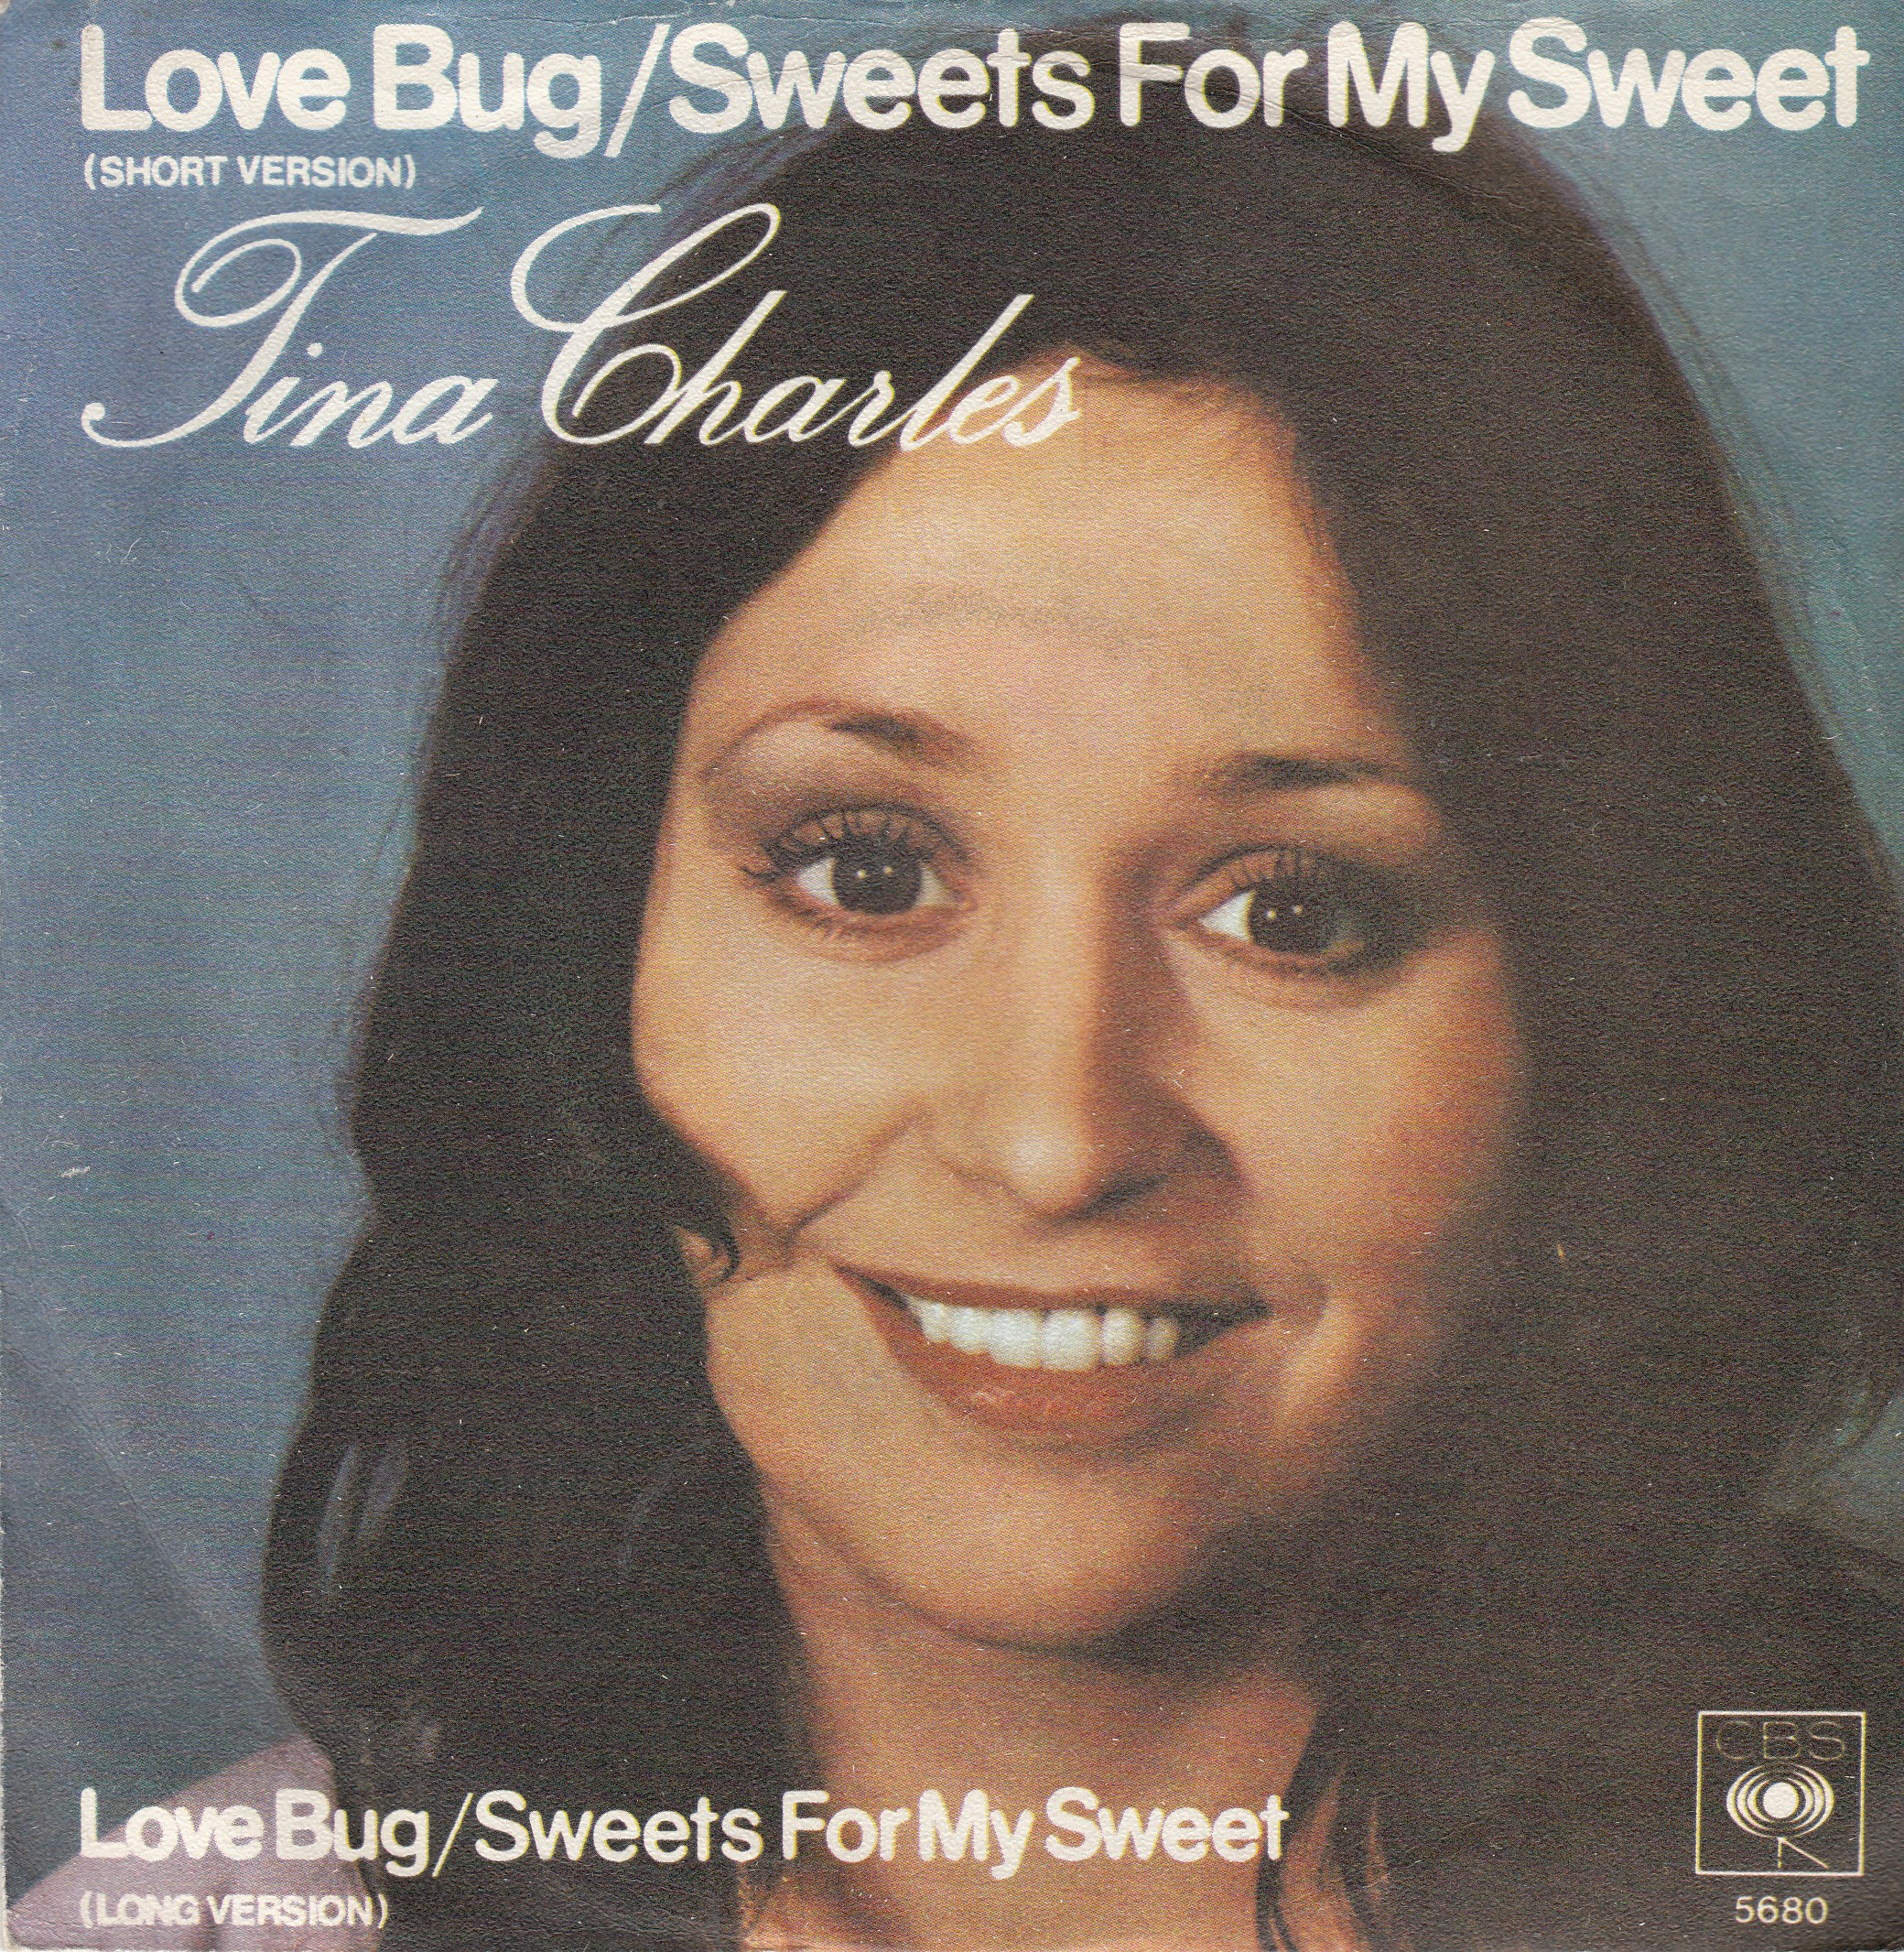 Charles Tina - Love Bug/sweets For My Sweet-Short Long Versions